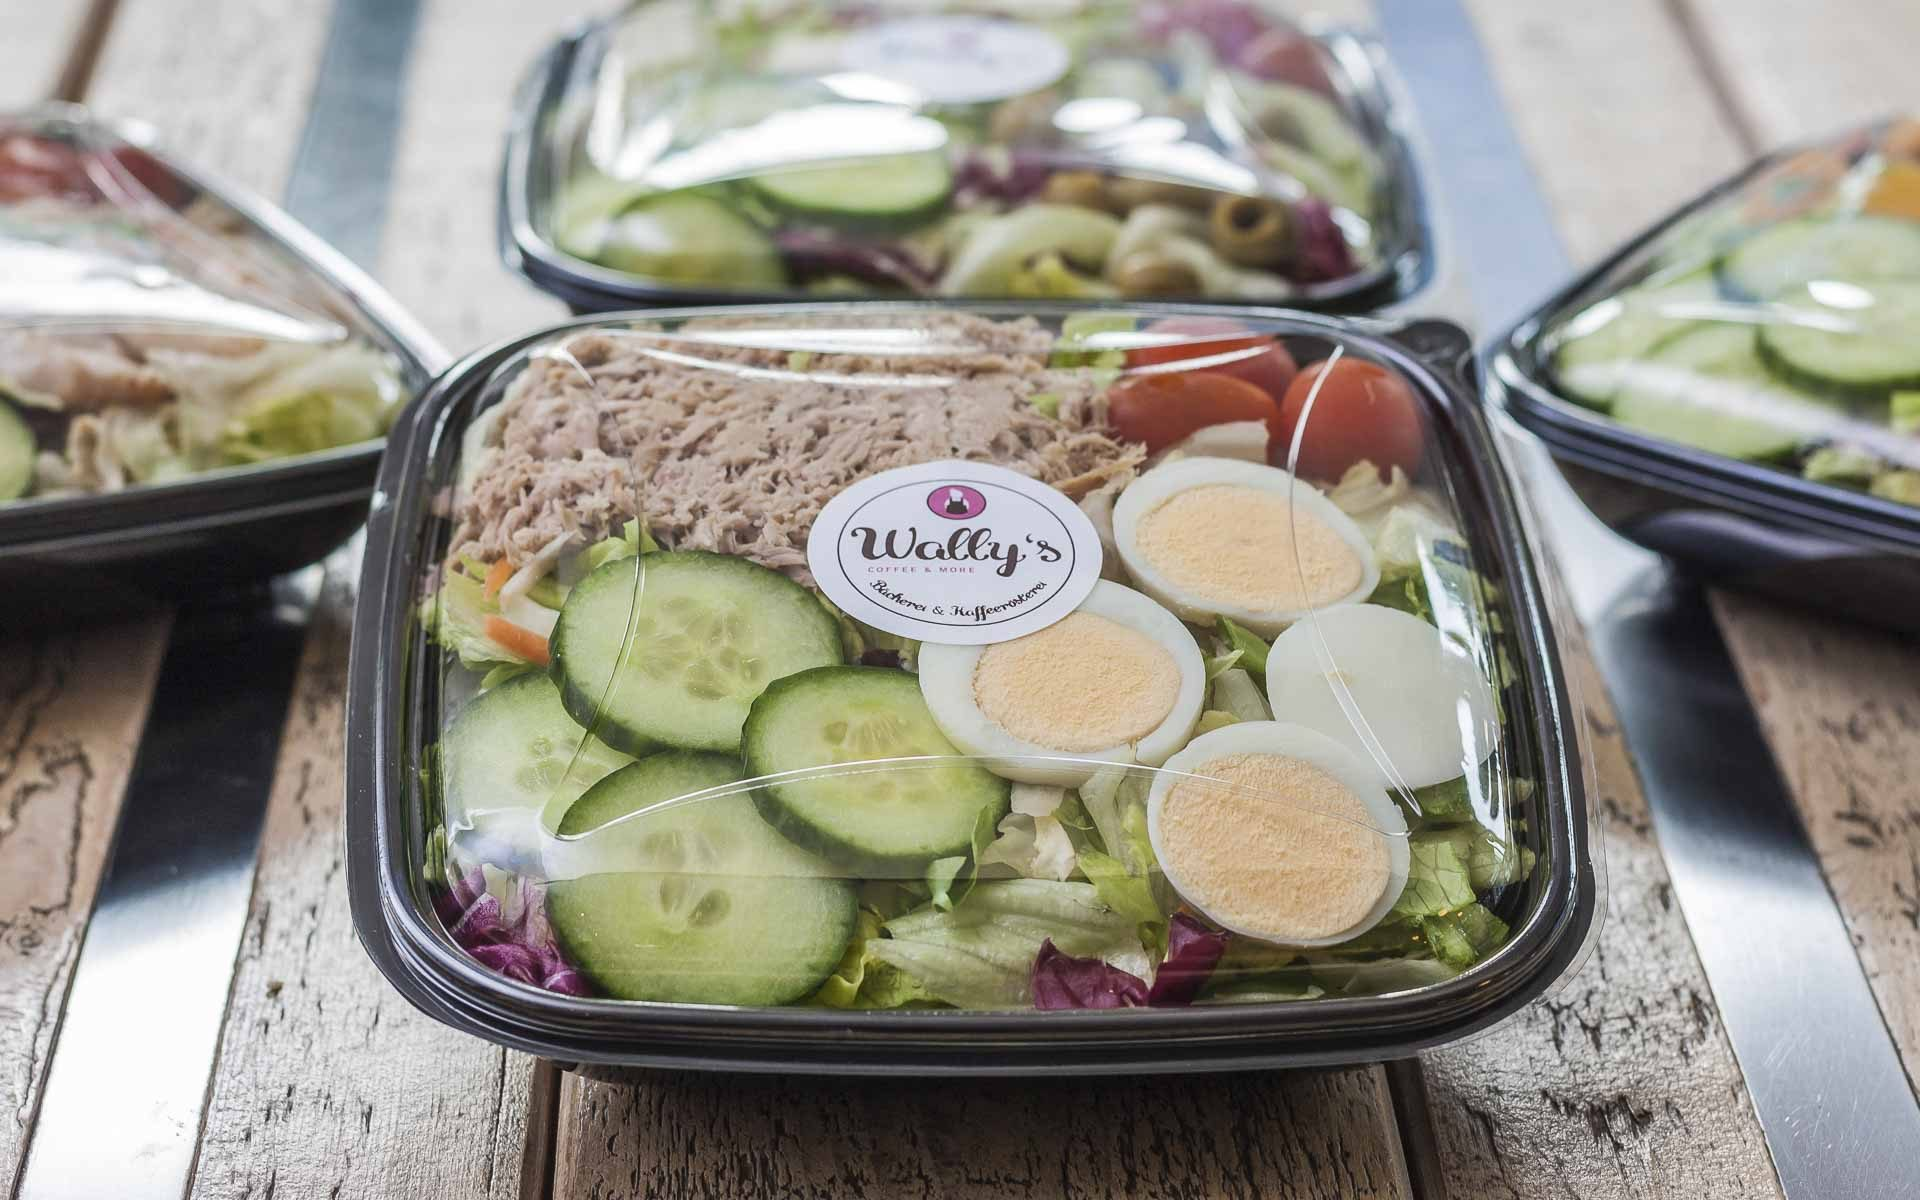 Wally's – Thunfischsalat to-go